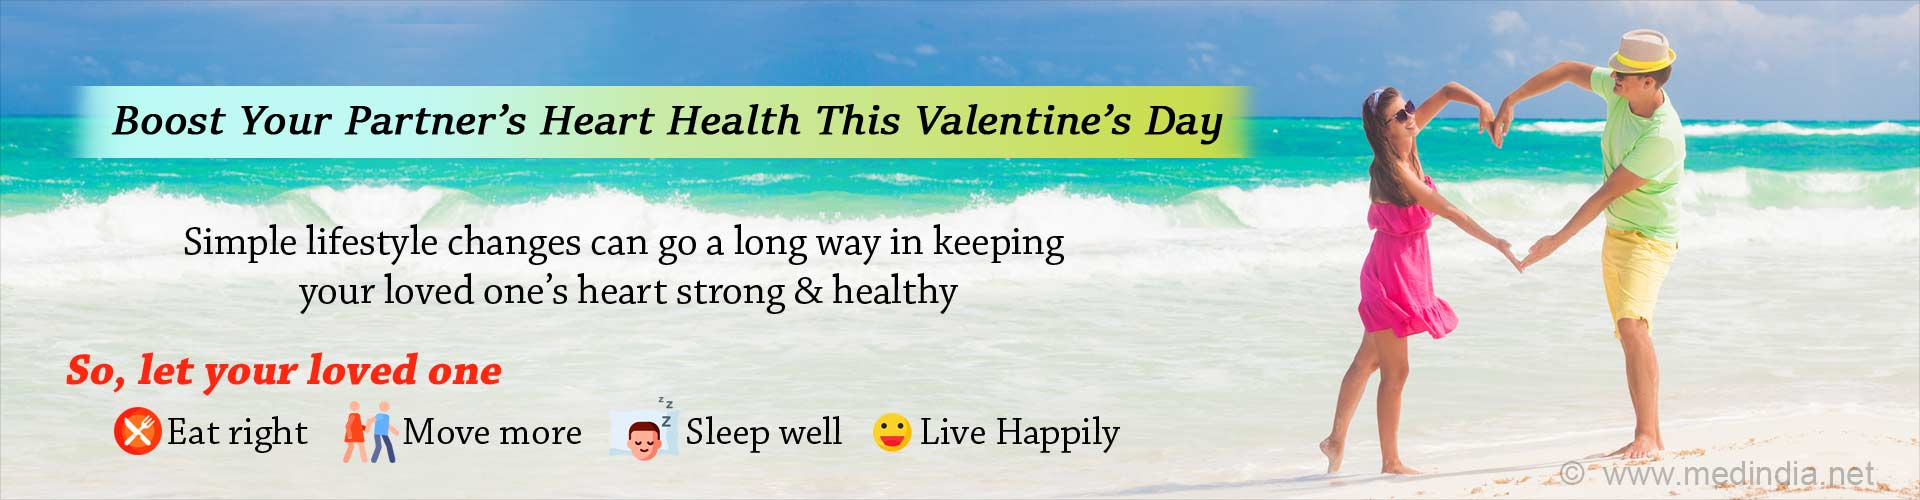 Valentine's Day: Opt for Healthy Lifestyle Habits to Boost Your Partner's Heart Health